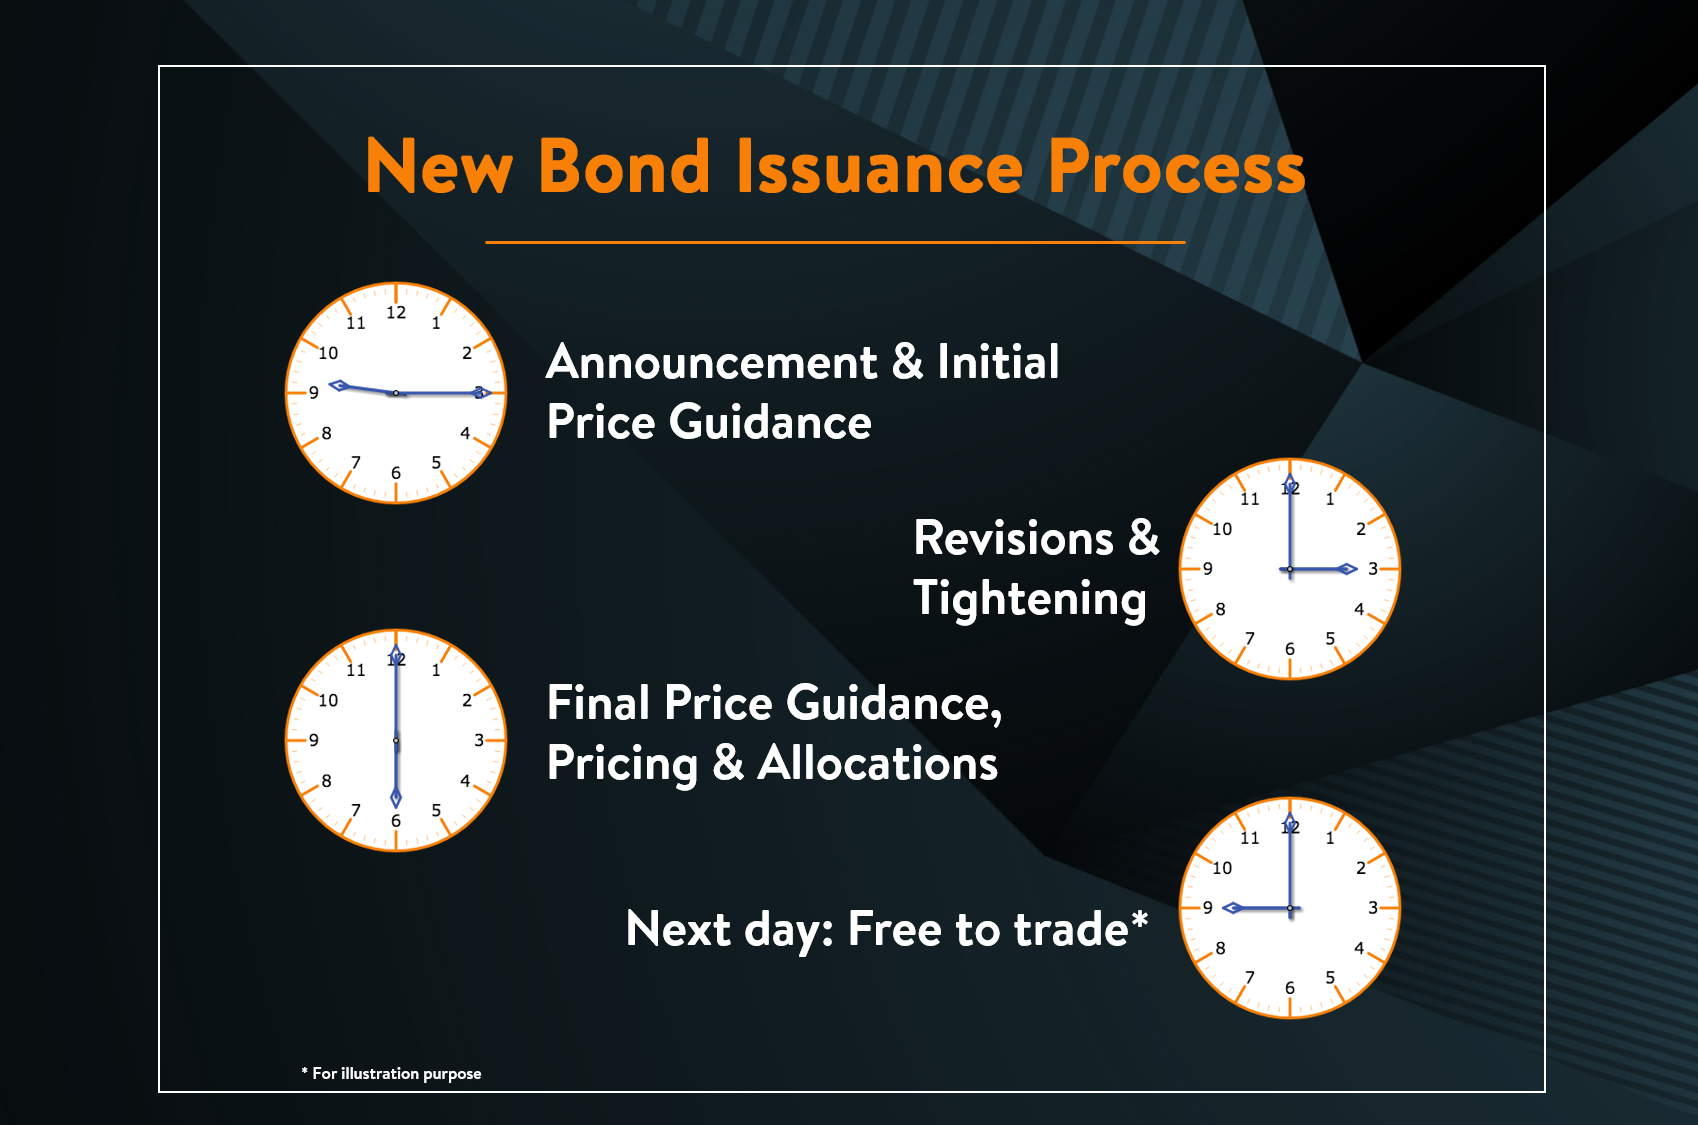 New Bond Issue Process and Timeline